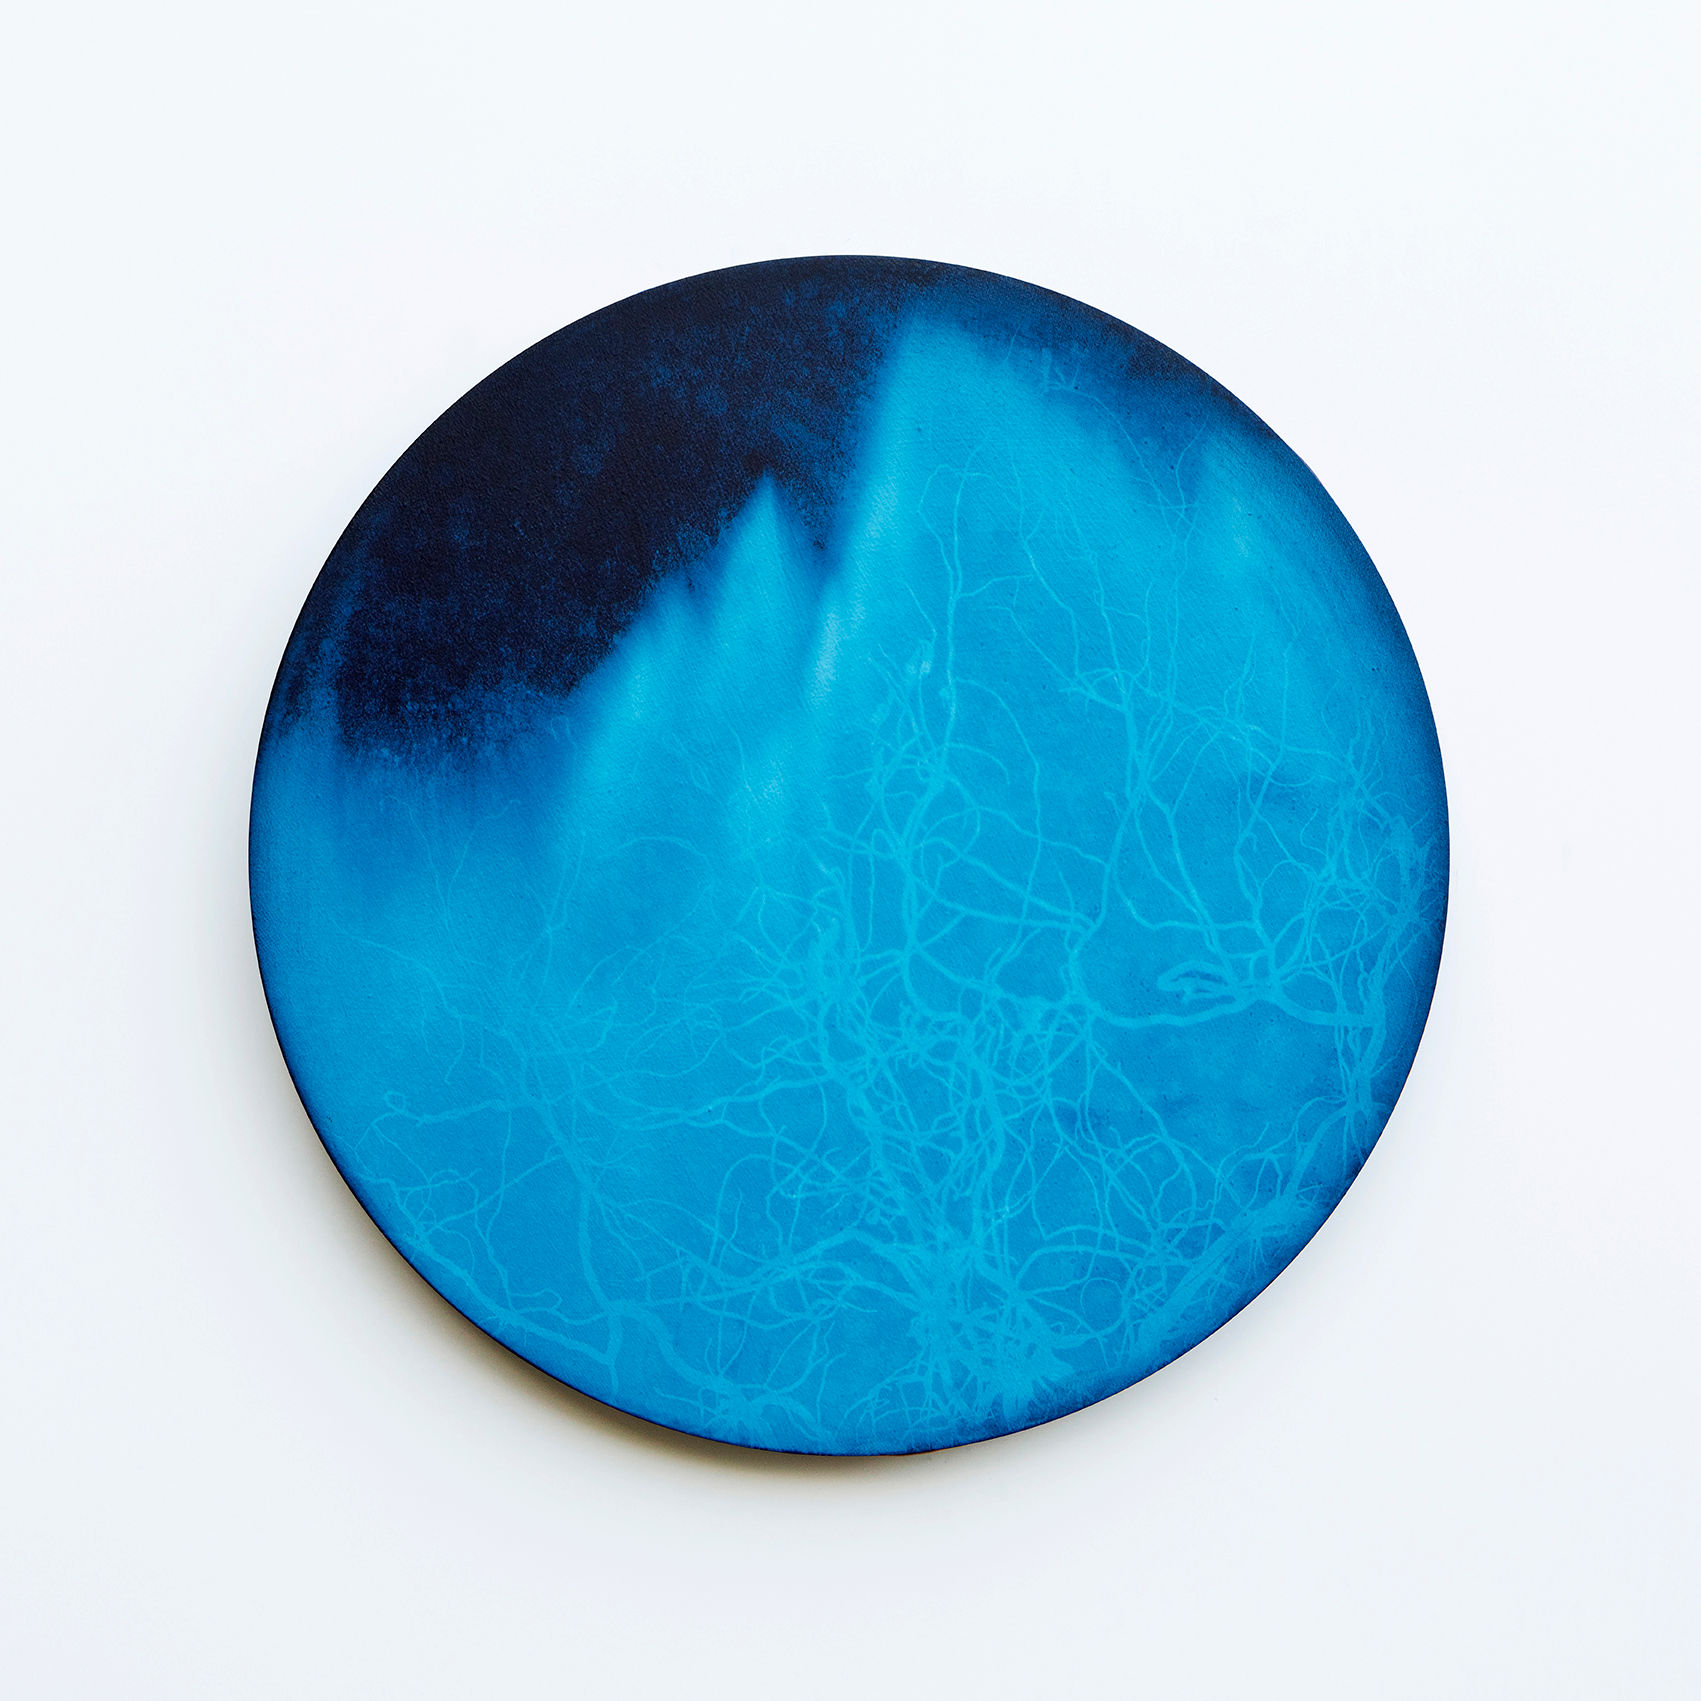 WATERSCAPE_내 안의 바깥 38, Diameter 40cm, Traditional pigment, water-print, water-drawing on canvas, 2018